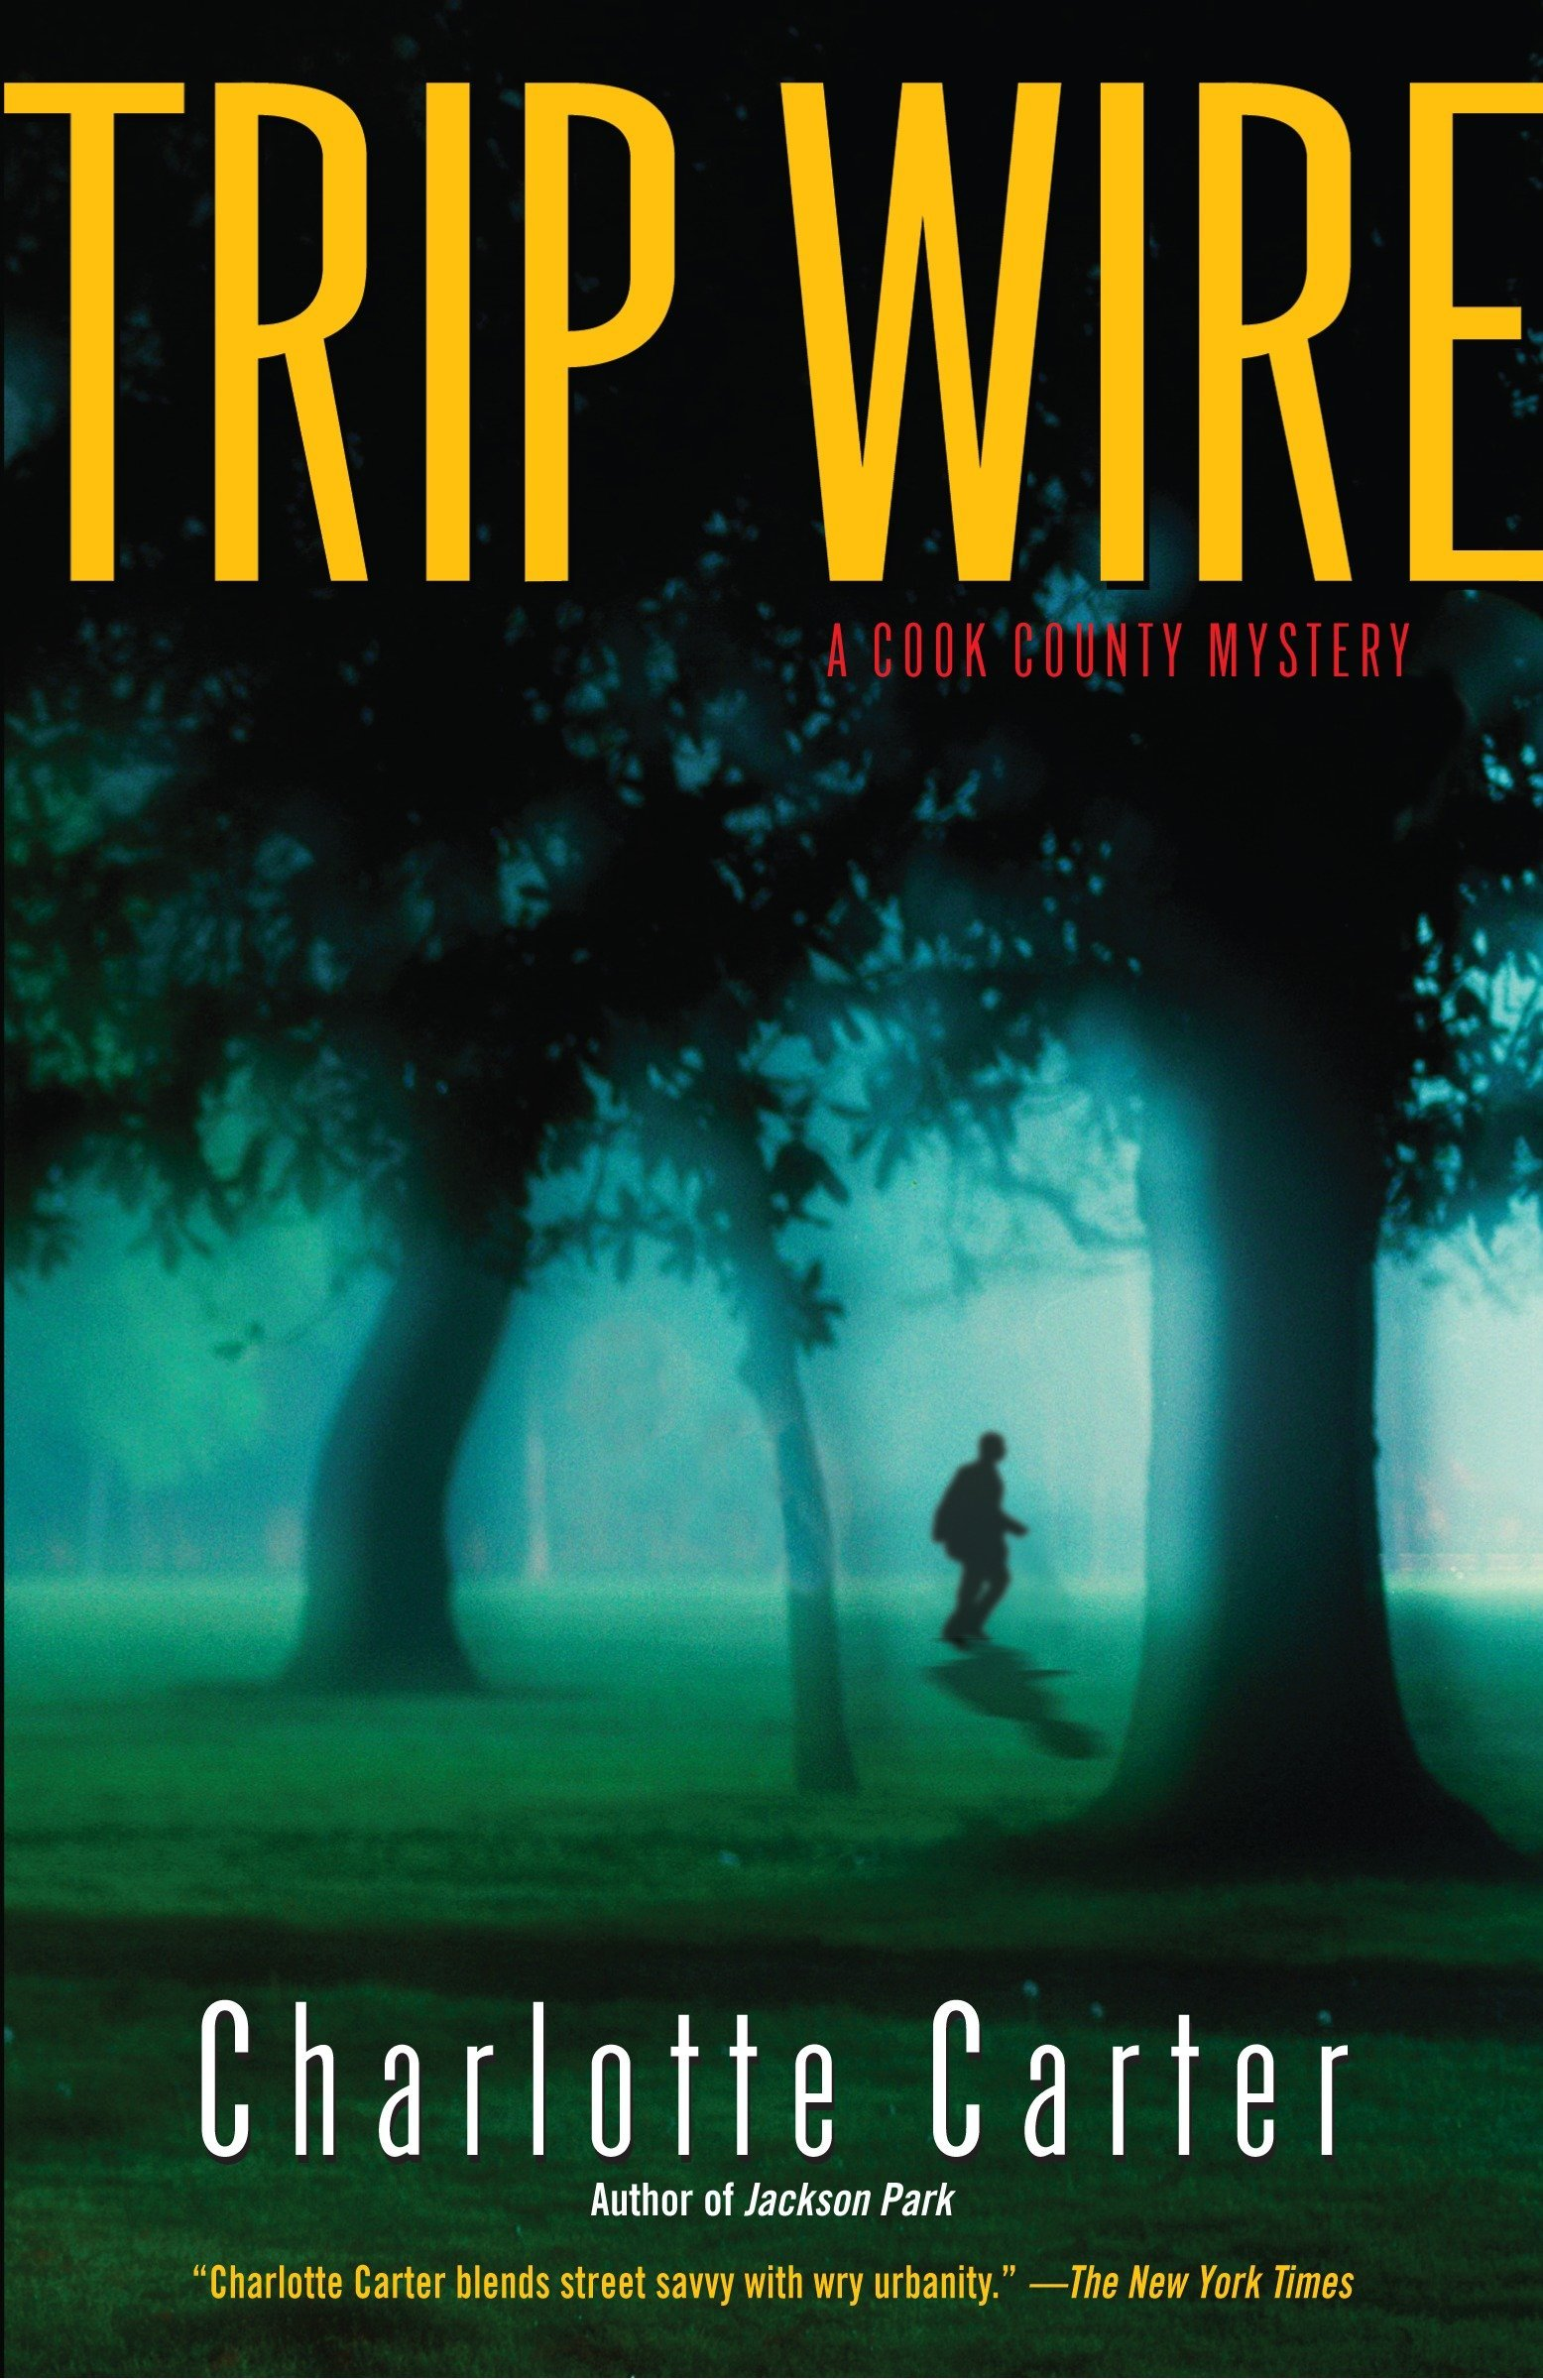 Amazon.com: Trip Wire: A Cook County Mystery (9780345447692 ...